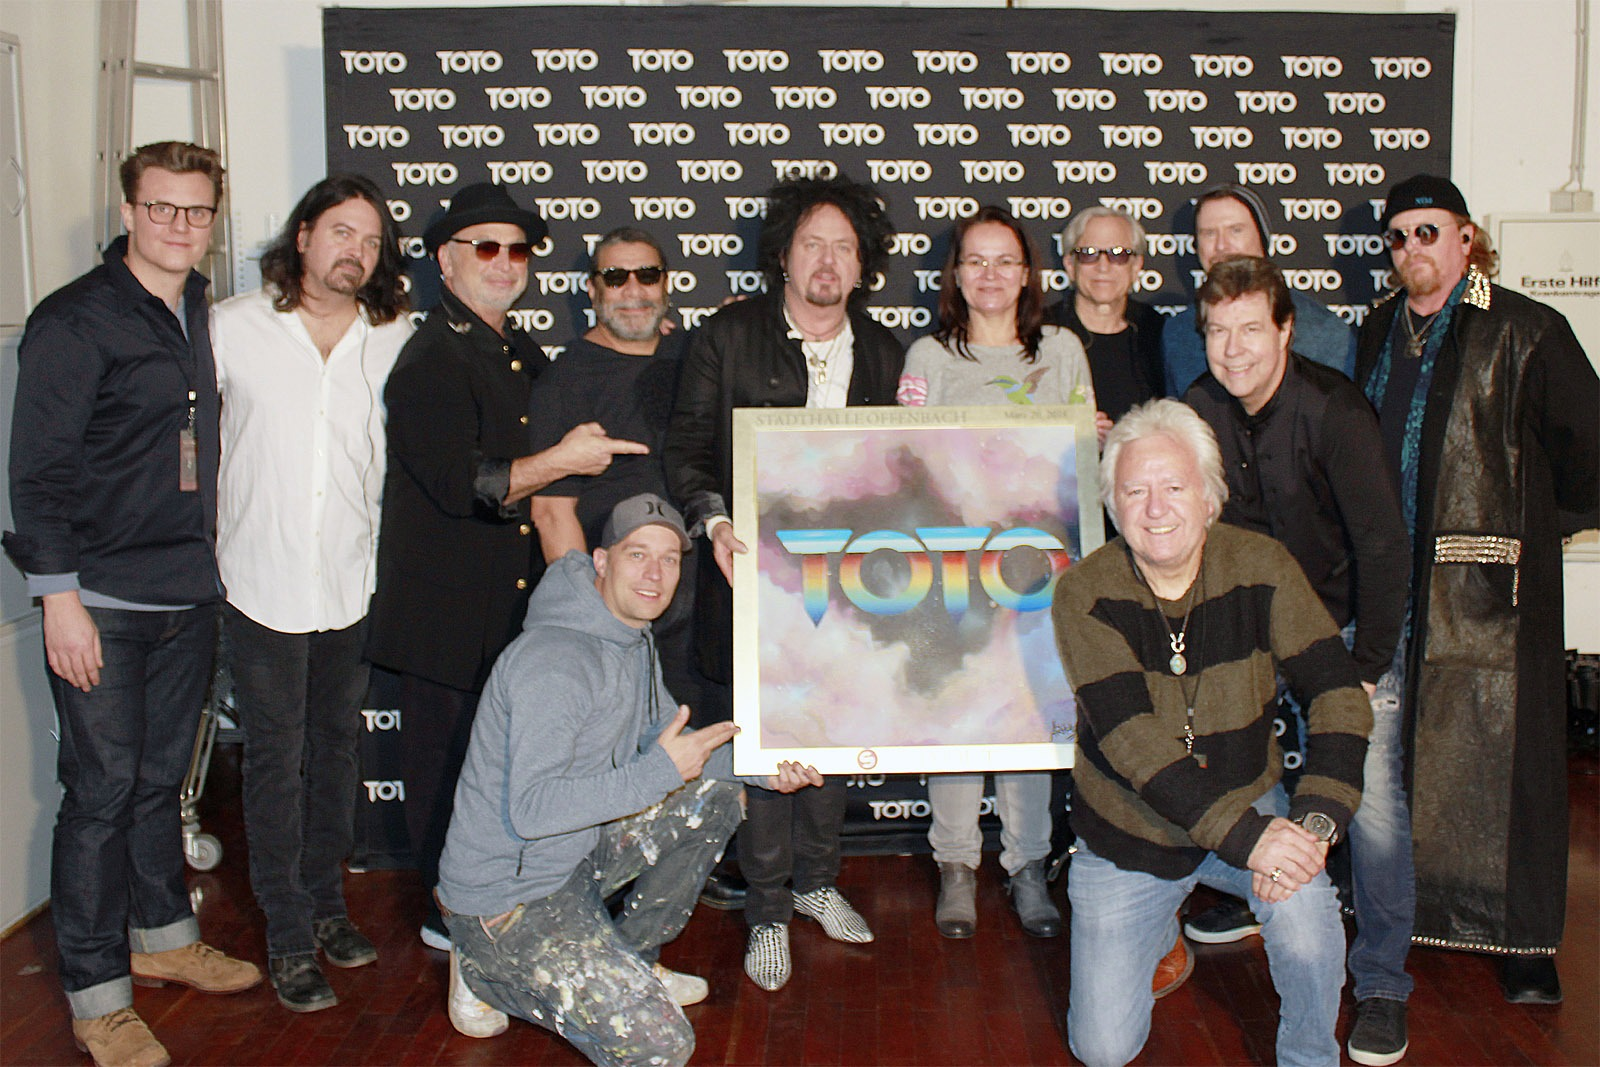 Sold_Out_Award_Stadthalle_Offenbach_2018_Toto_Leinwand_folie_3